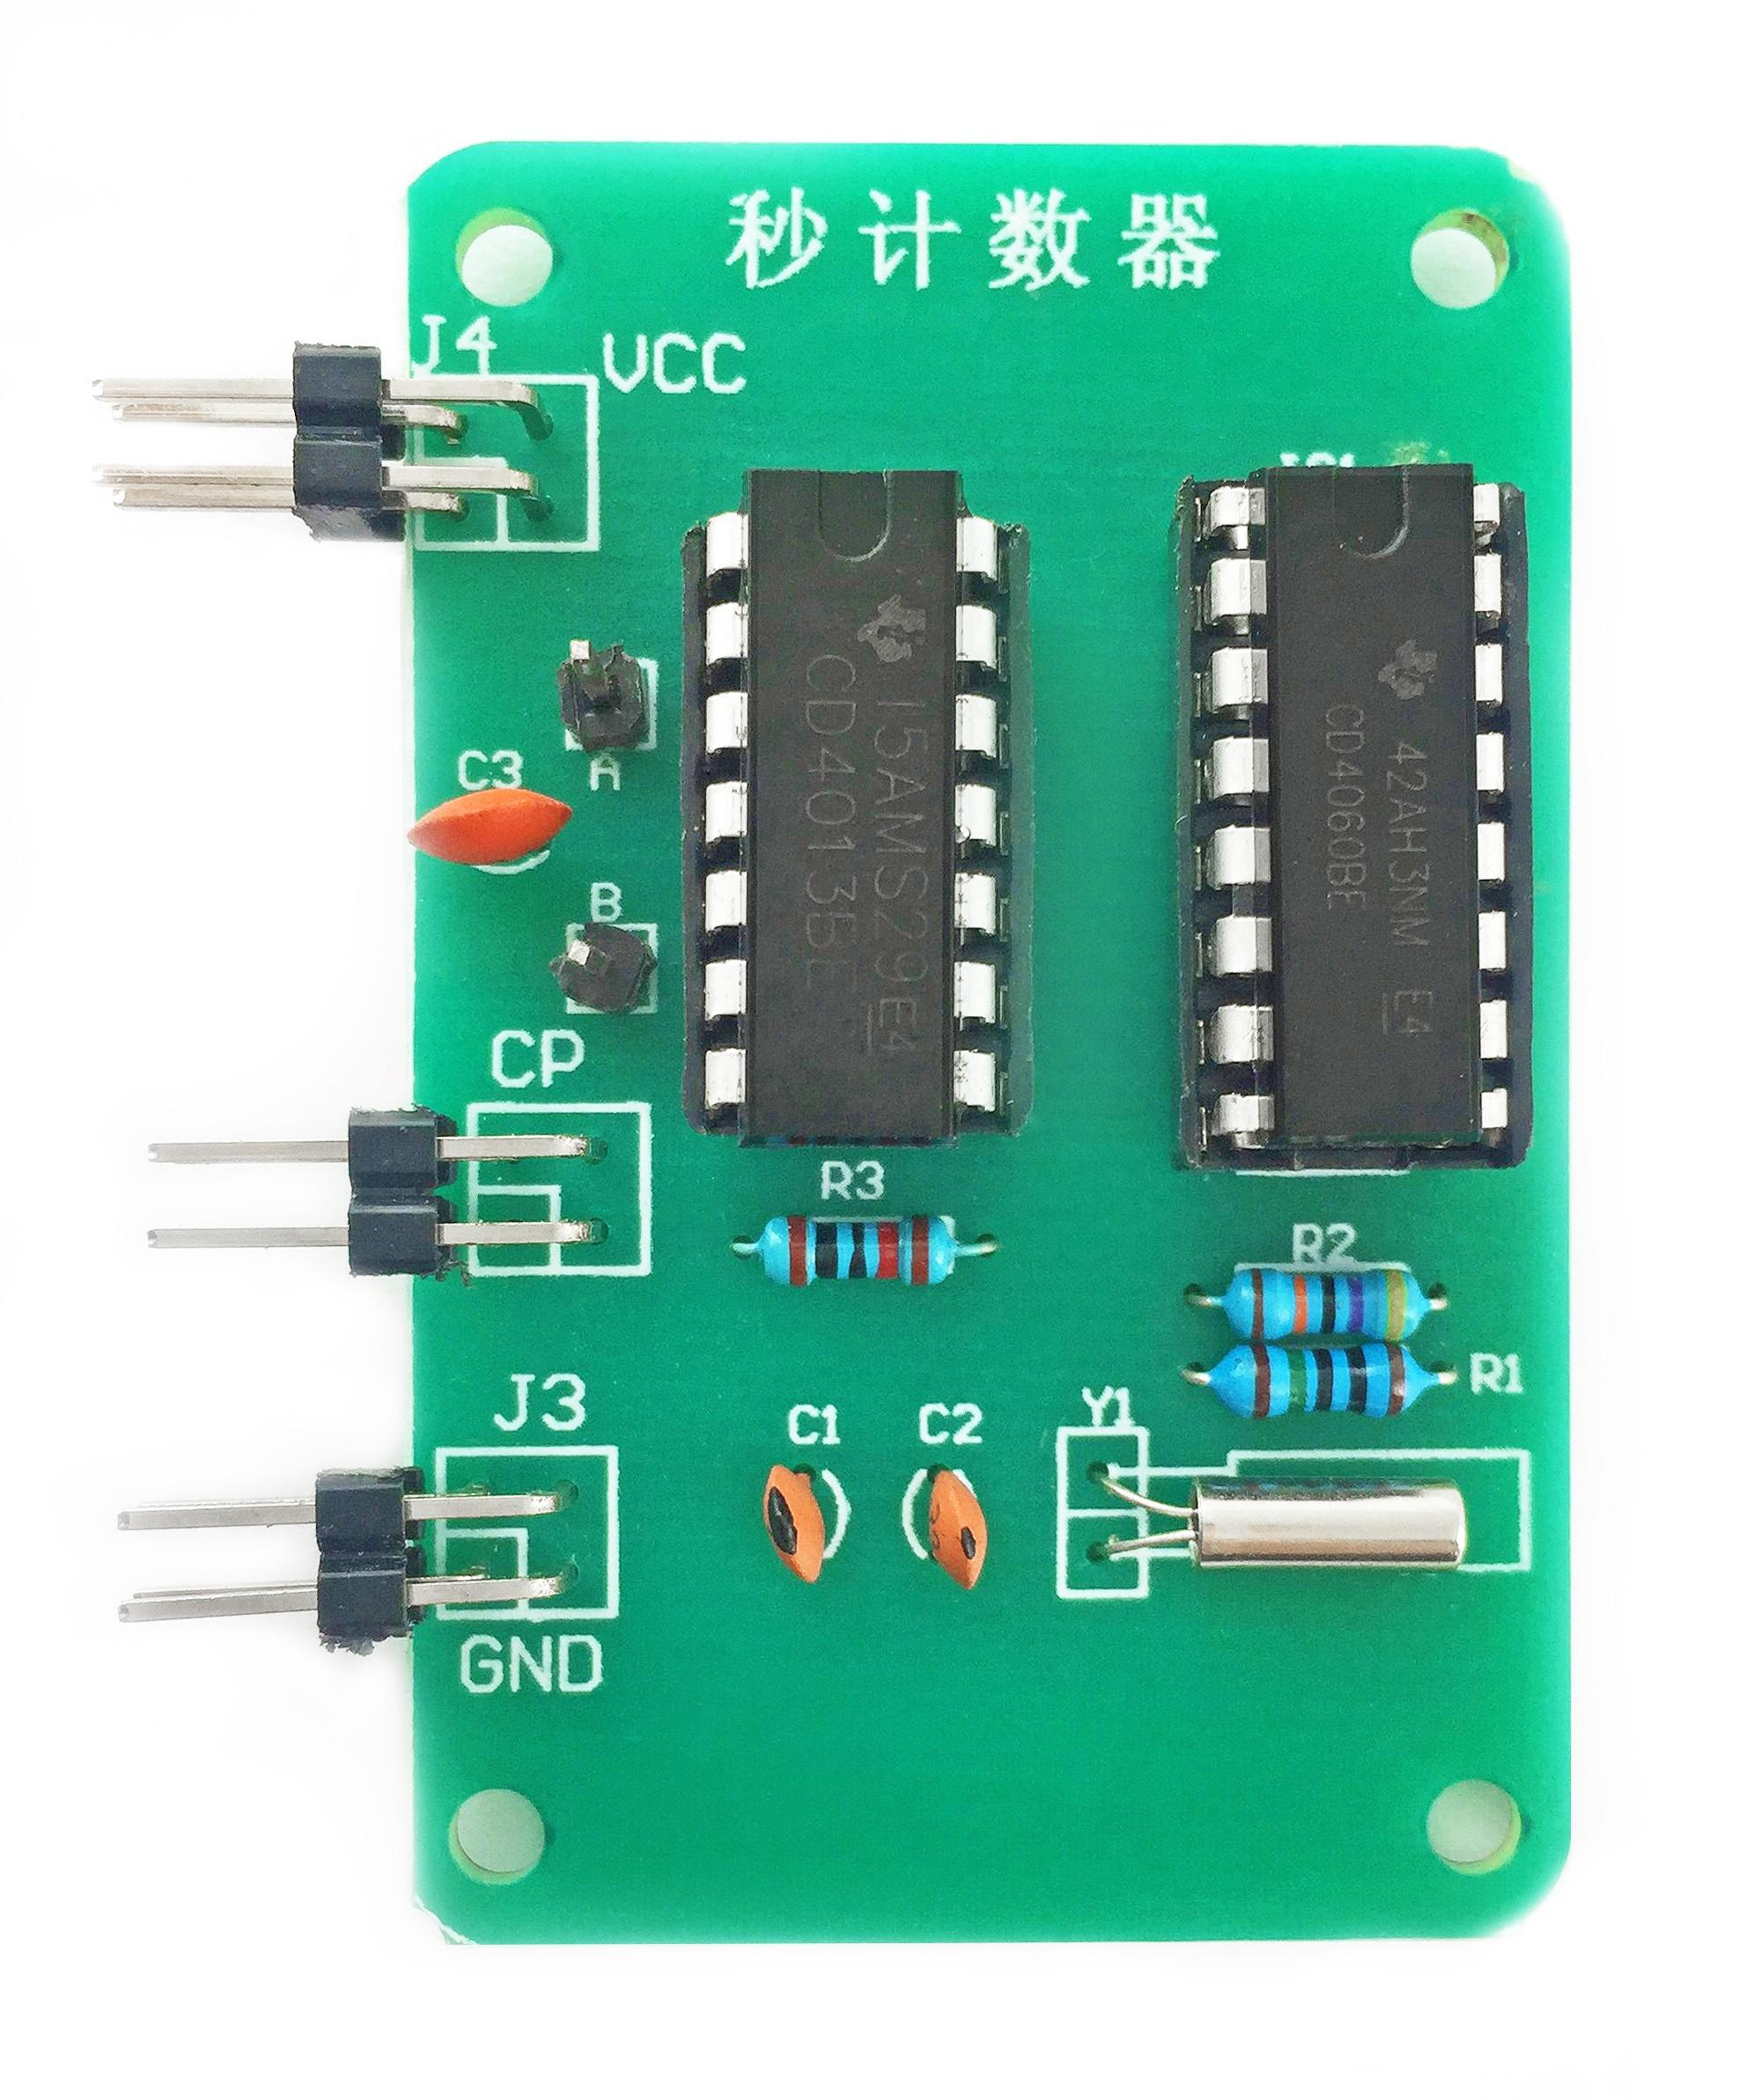 Diy Second Counter Signal Generation Circuit Board Electronic Geiger Assembly Training Kit